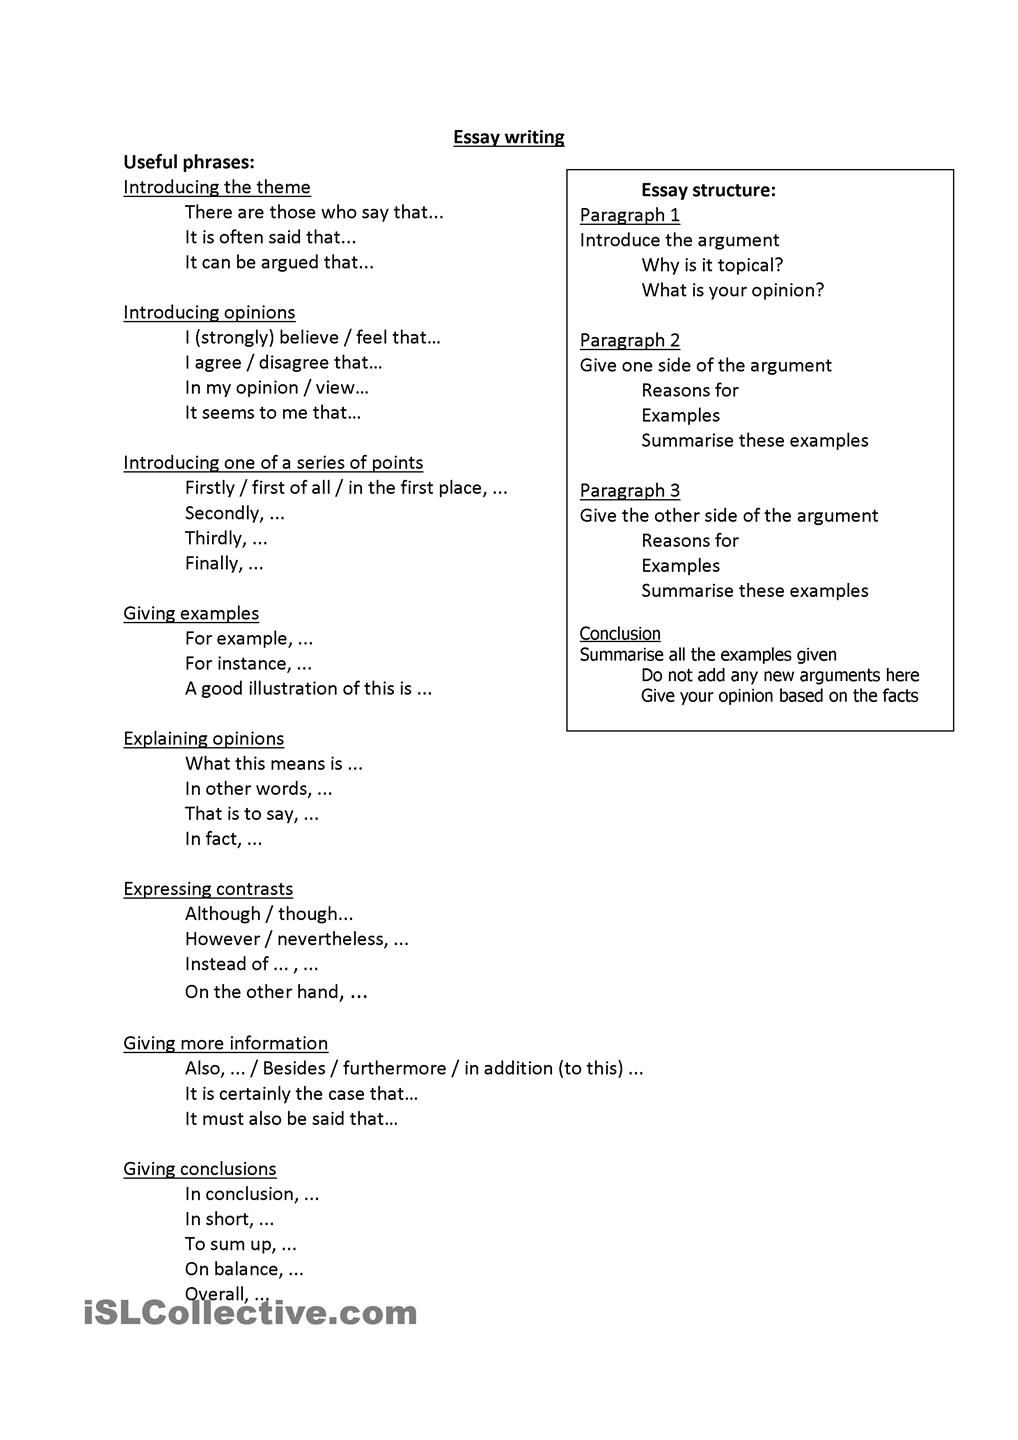 Useful phrases for Essay Writing   Essay writing [ 1440 x 1018 Pixel ]